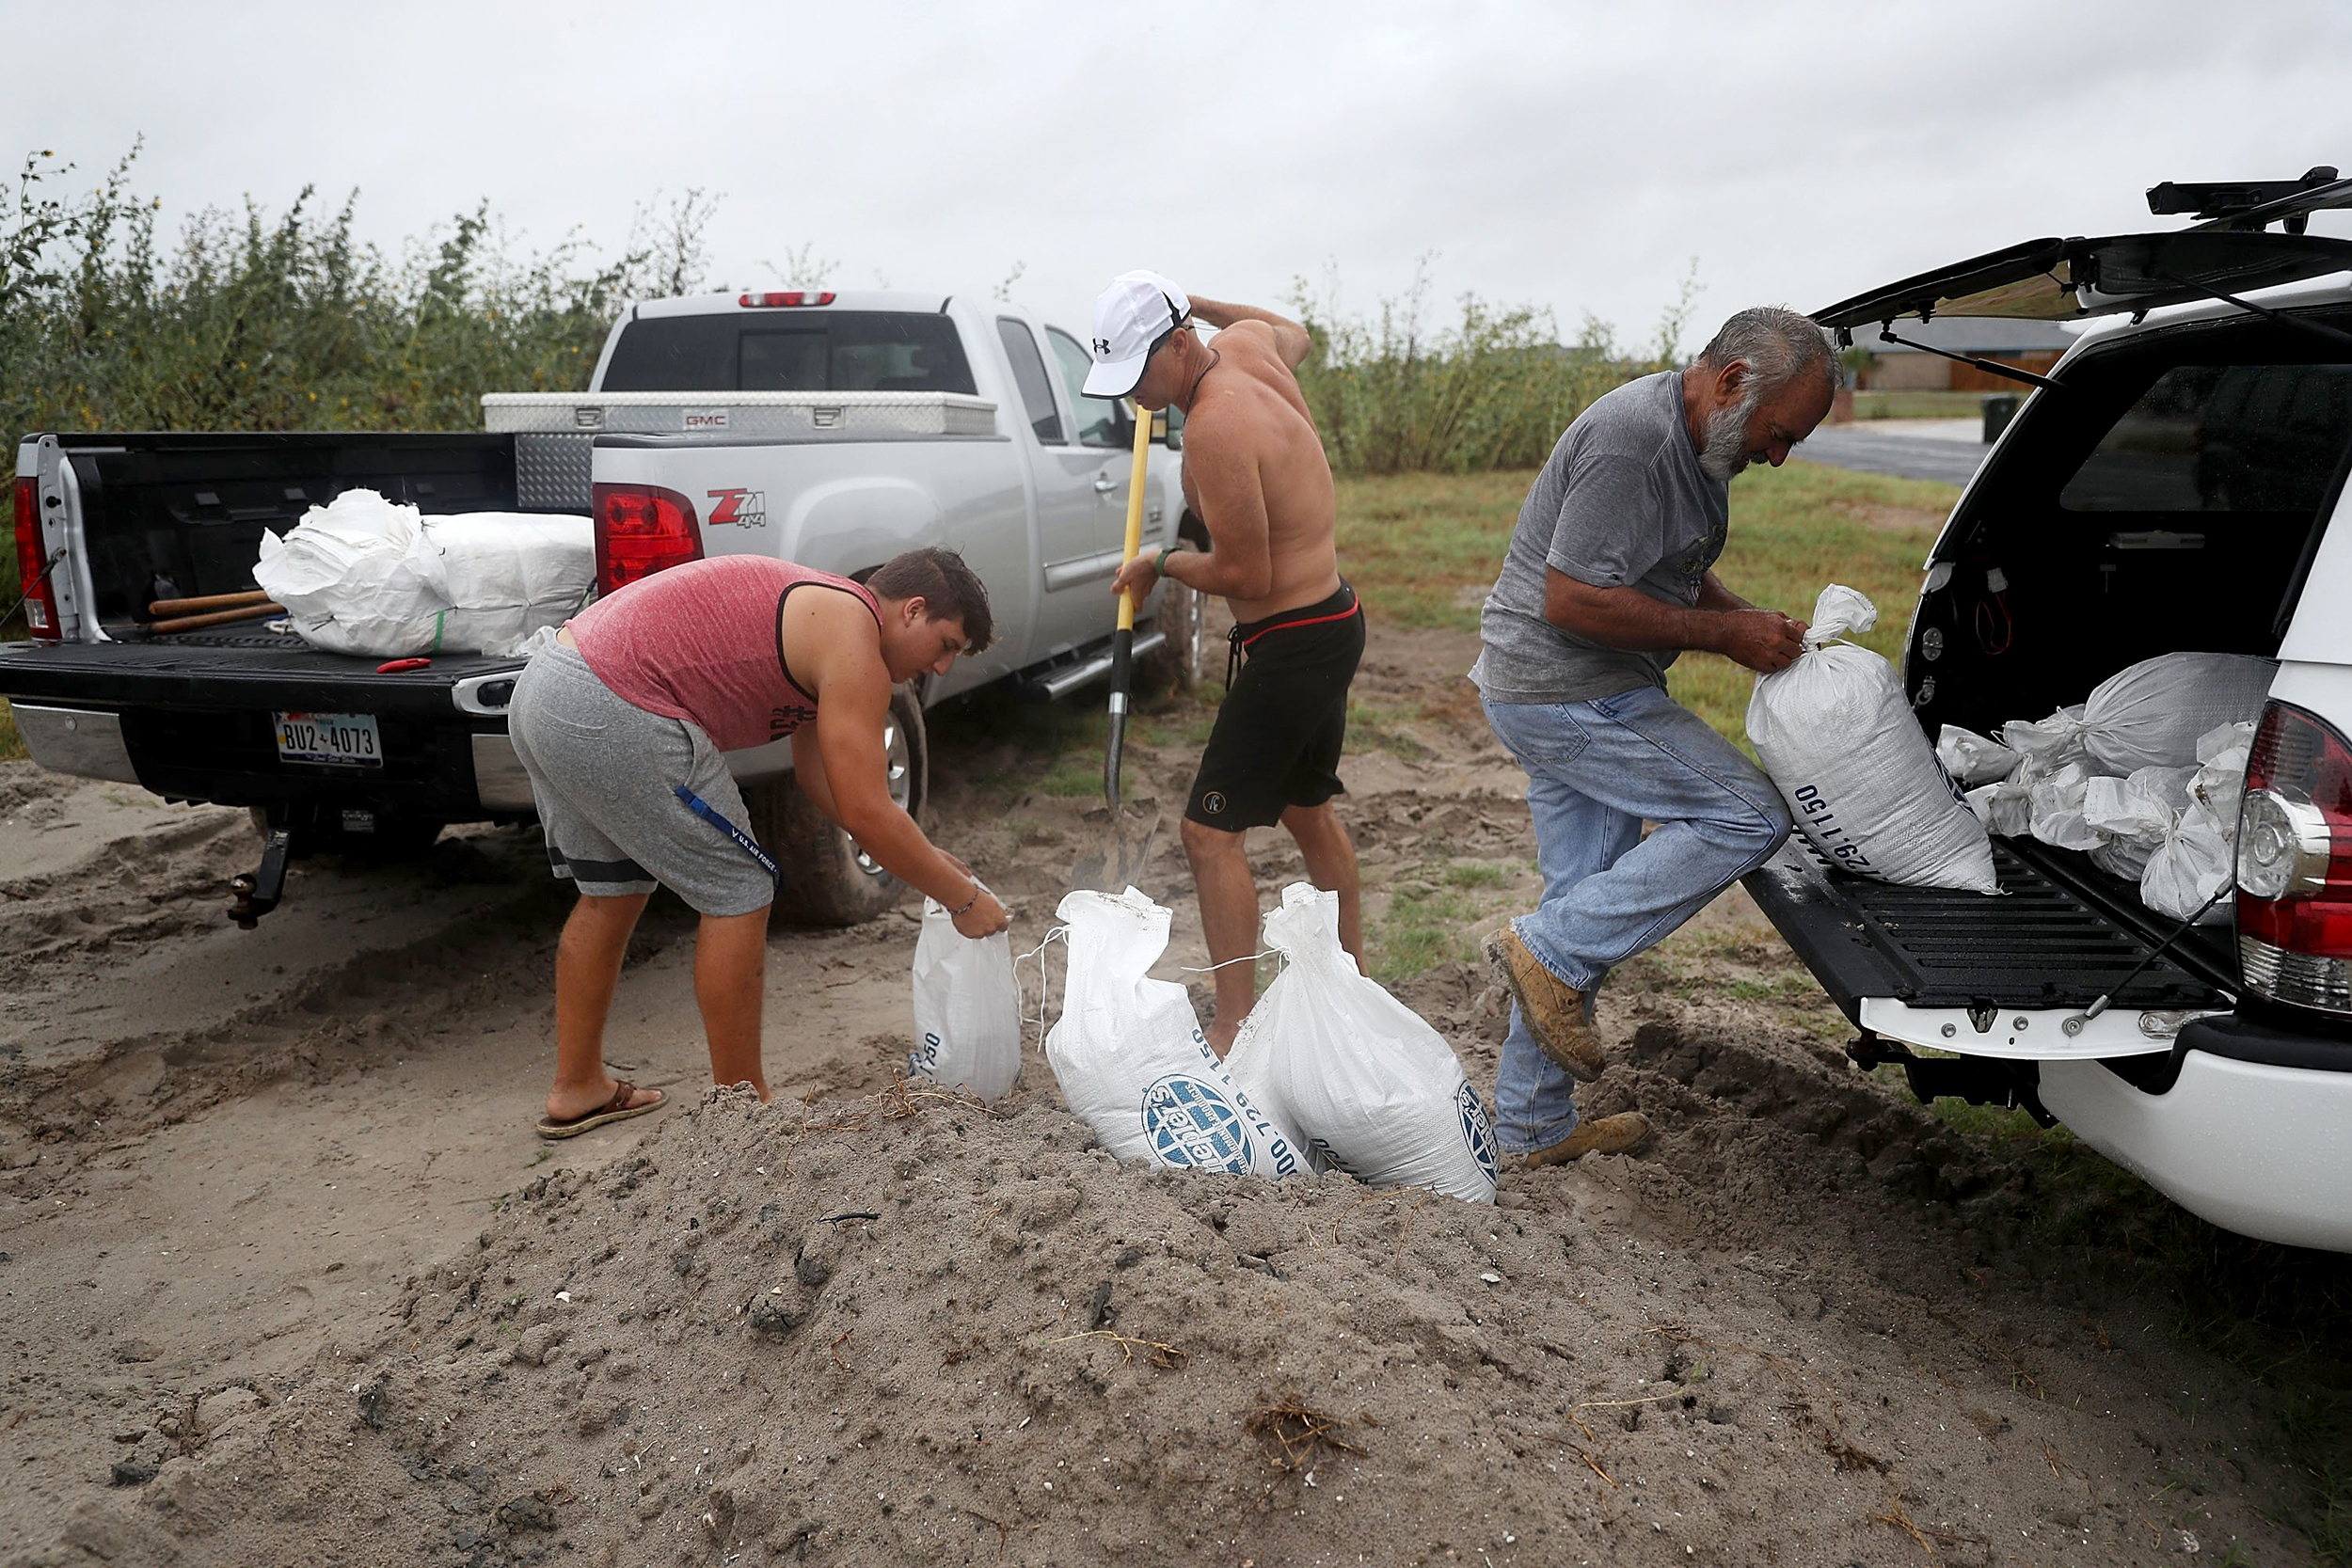 Image: Cody Munds, Lee Martin and John Pezzi, left to right, fill sandbags as people prepare for approaching Hurricane Harvey on Aug. 25, 2017 in Corpus Christi, Texas.